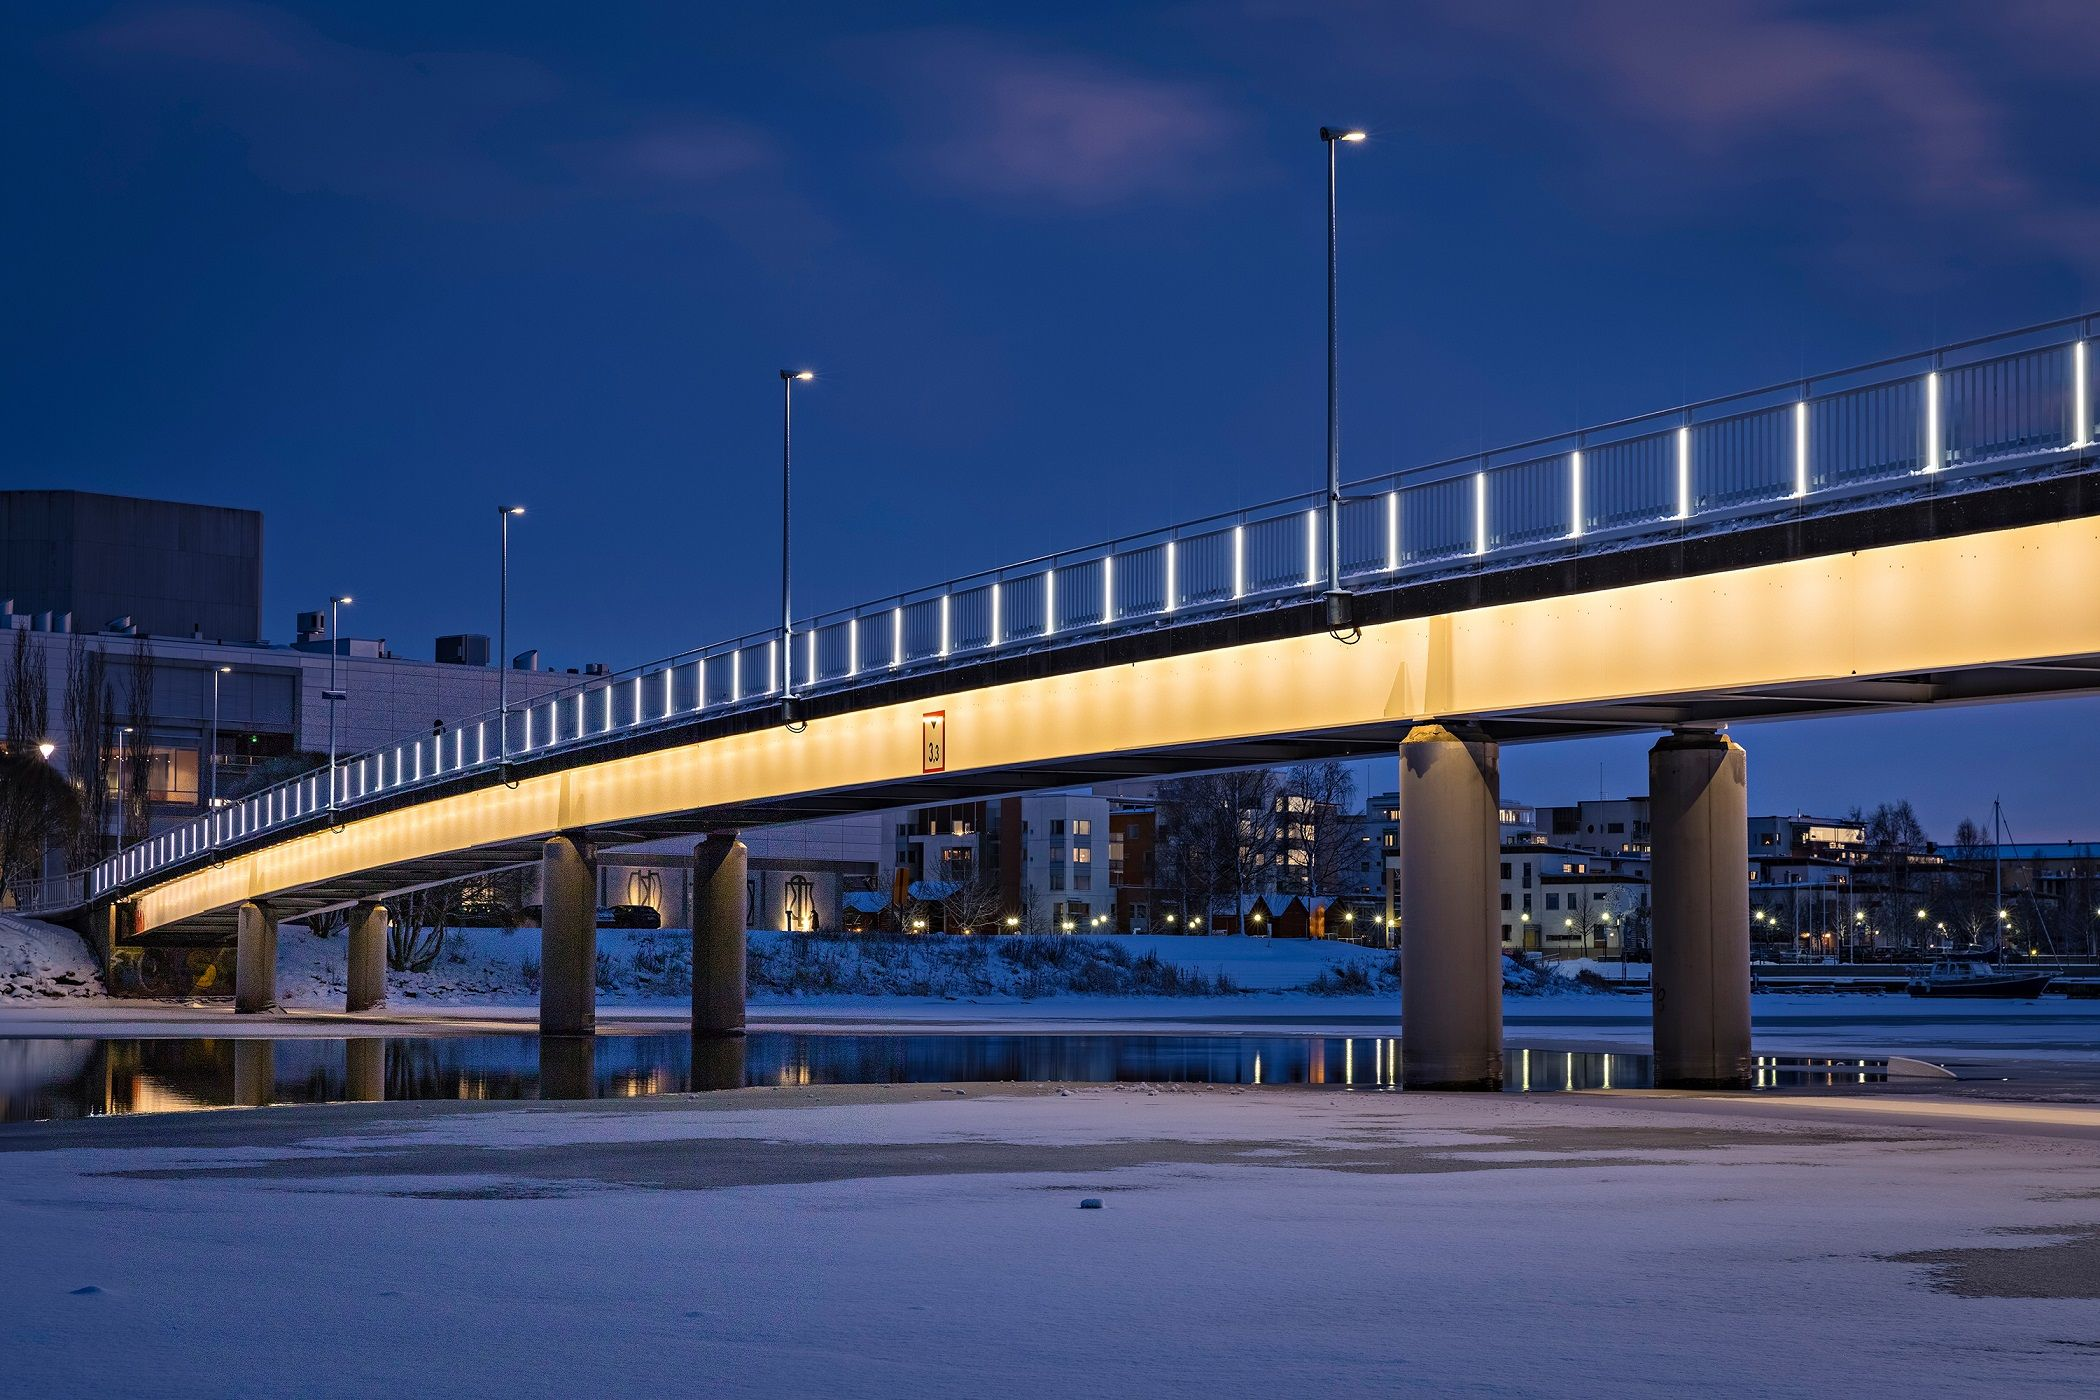 474a140890 Pikisaari bridge – Oulu, Finland – Architectural project: Roope Siiroinen,  VALOA design - Lighting products: LedTube, Underscore by iGuzzini  Illuminazione ...